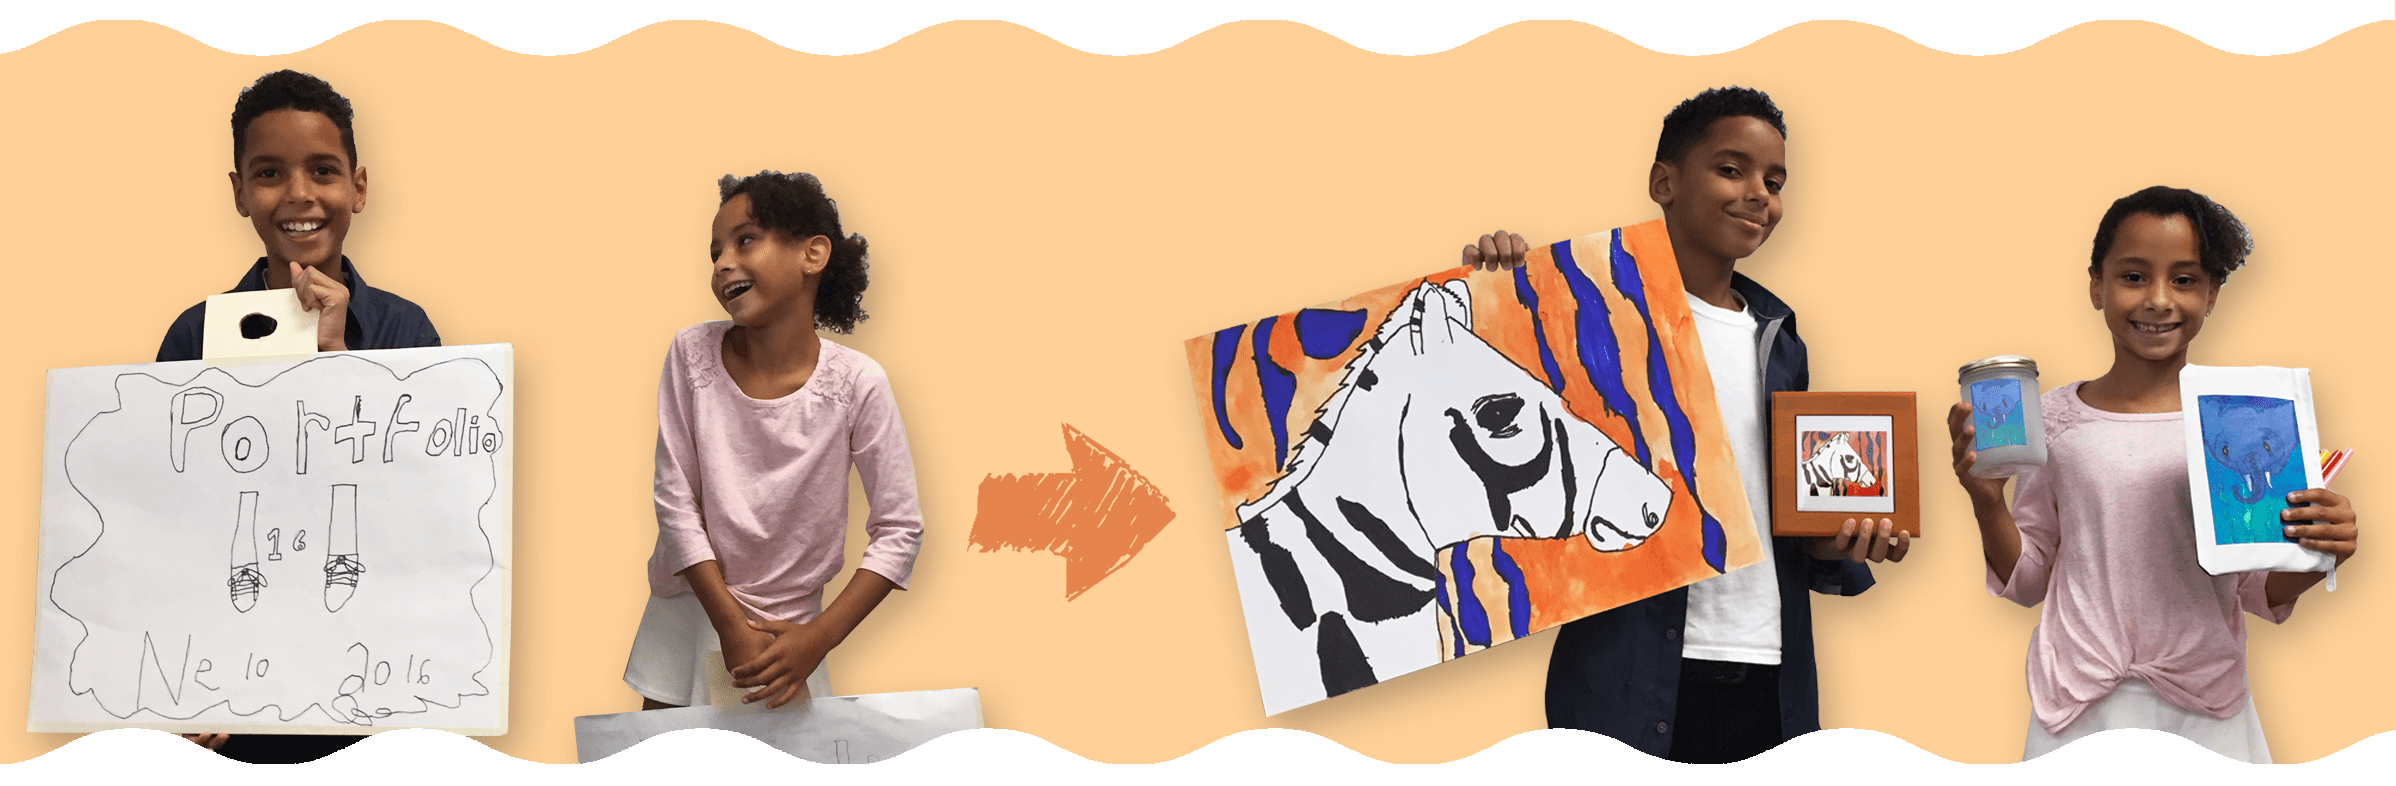 Choose from your child's art portfolio to create personalized products from their art!